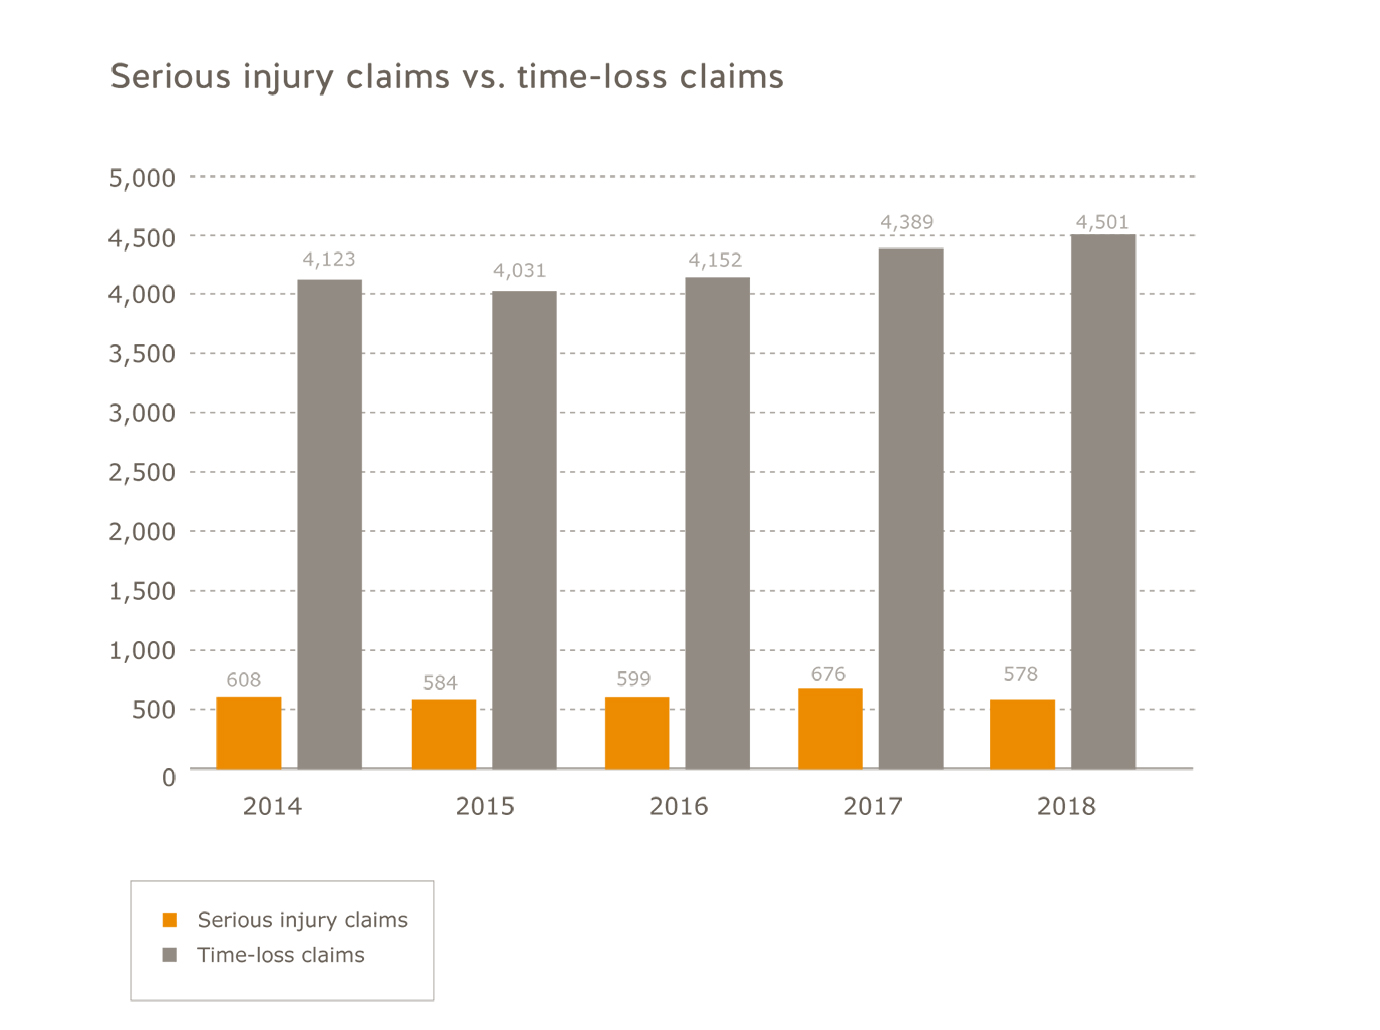 Transportation industry serious injury claims vs. time-loss claims for 2014 to 2018. Serious injury claims: 2014=608; 2015=584; 2016=599; 2017=676; 2018=578. Time-loss claims: 2014=4,123, 2015=4,031; 2016=4,152; 2017=4,389; 2018=4,501